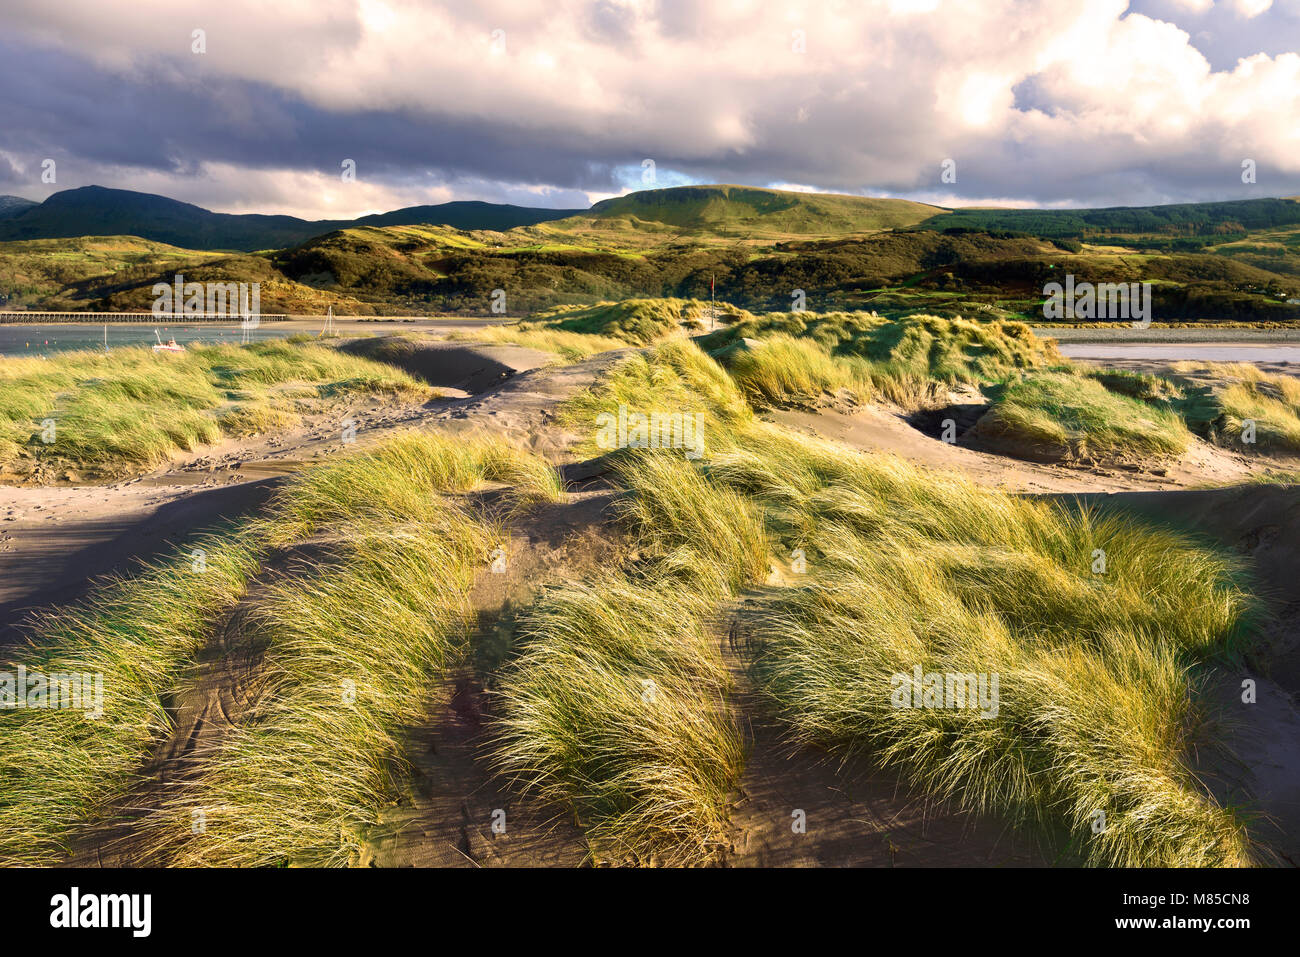 A winter view across the sand dunes of Barmouth Beach looking towards Mawddach Estuary, North Wales. Stock Photo